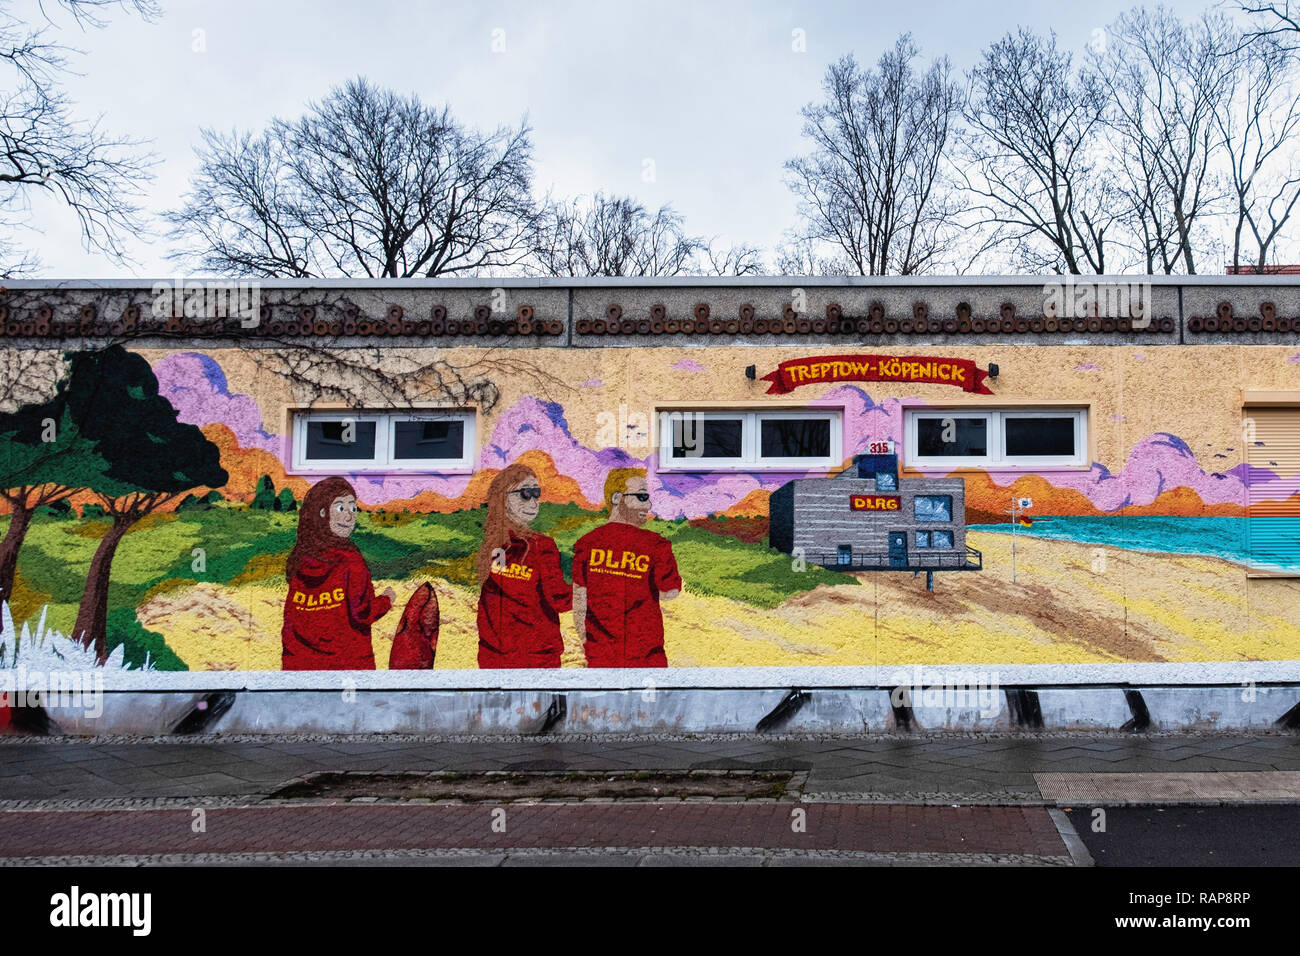 DLRG German Life Saving Society. Colourful building exterior in Oberspreestraße 181,Berlin-Köpenick - Stock Image